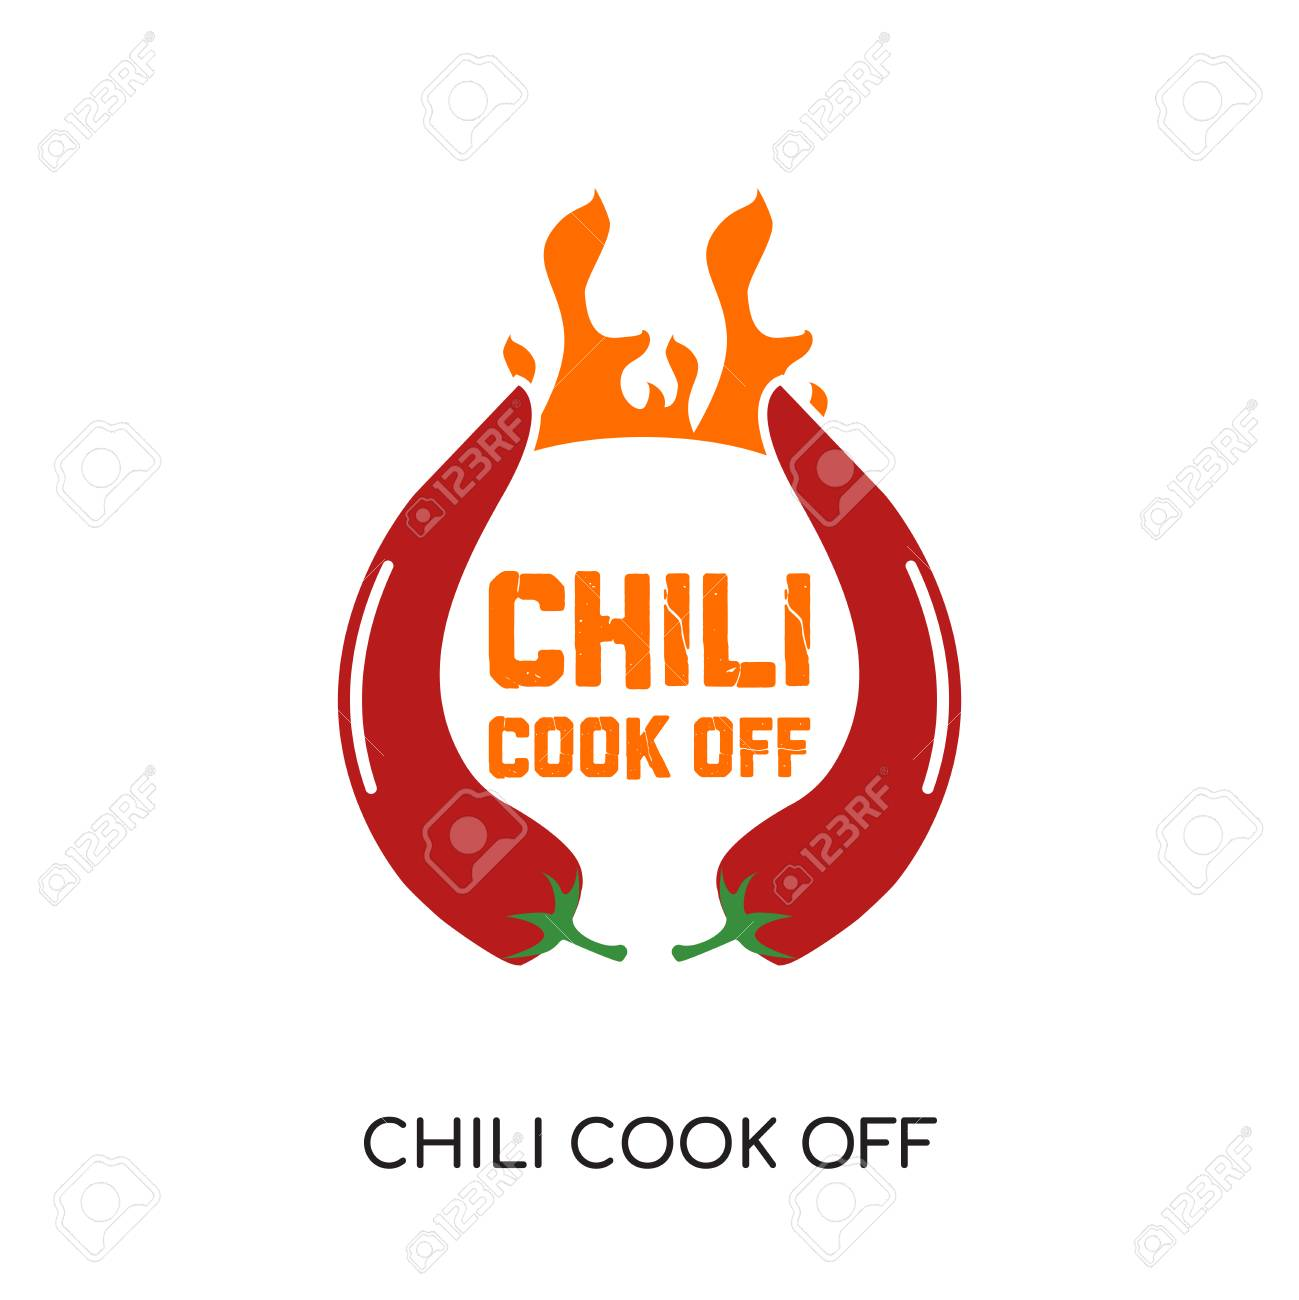 chili cook off logo isolated on white background for your web, mobile and app design - 98897305